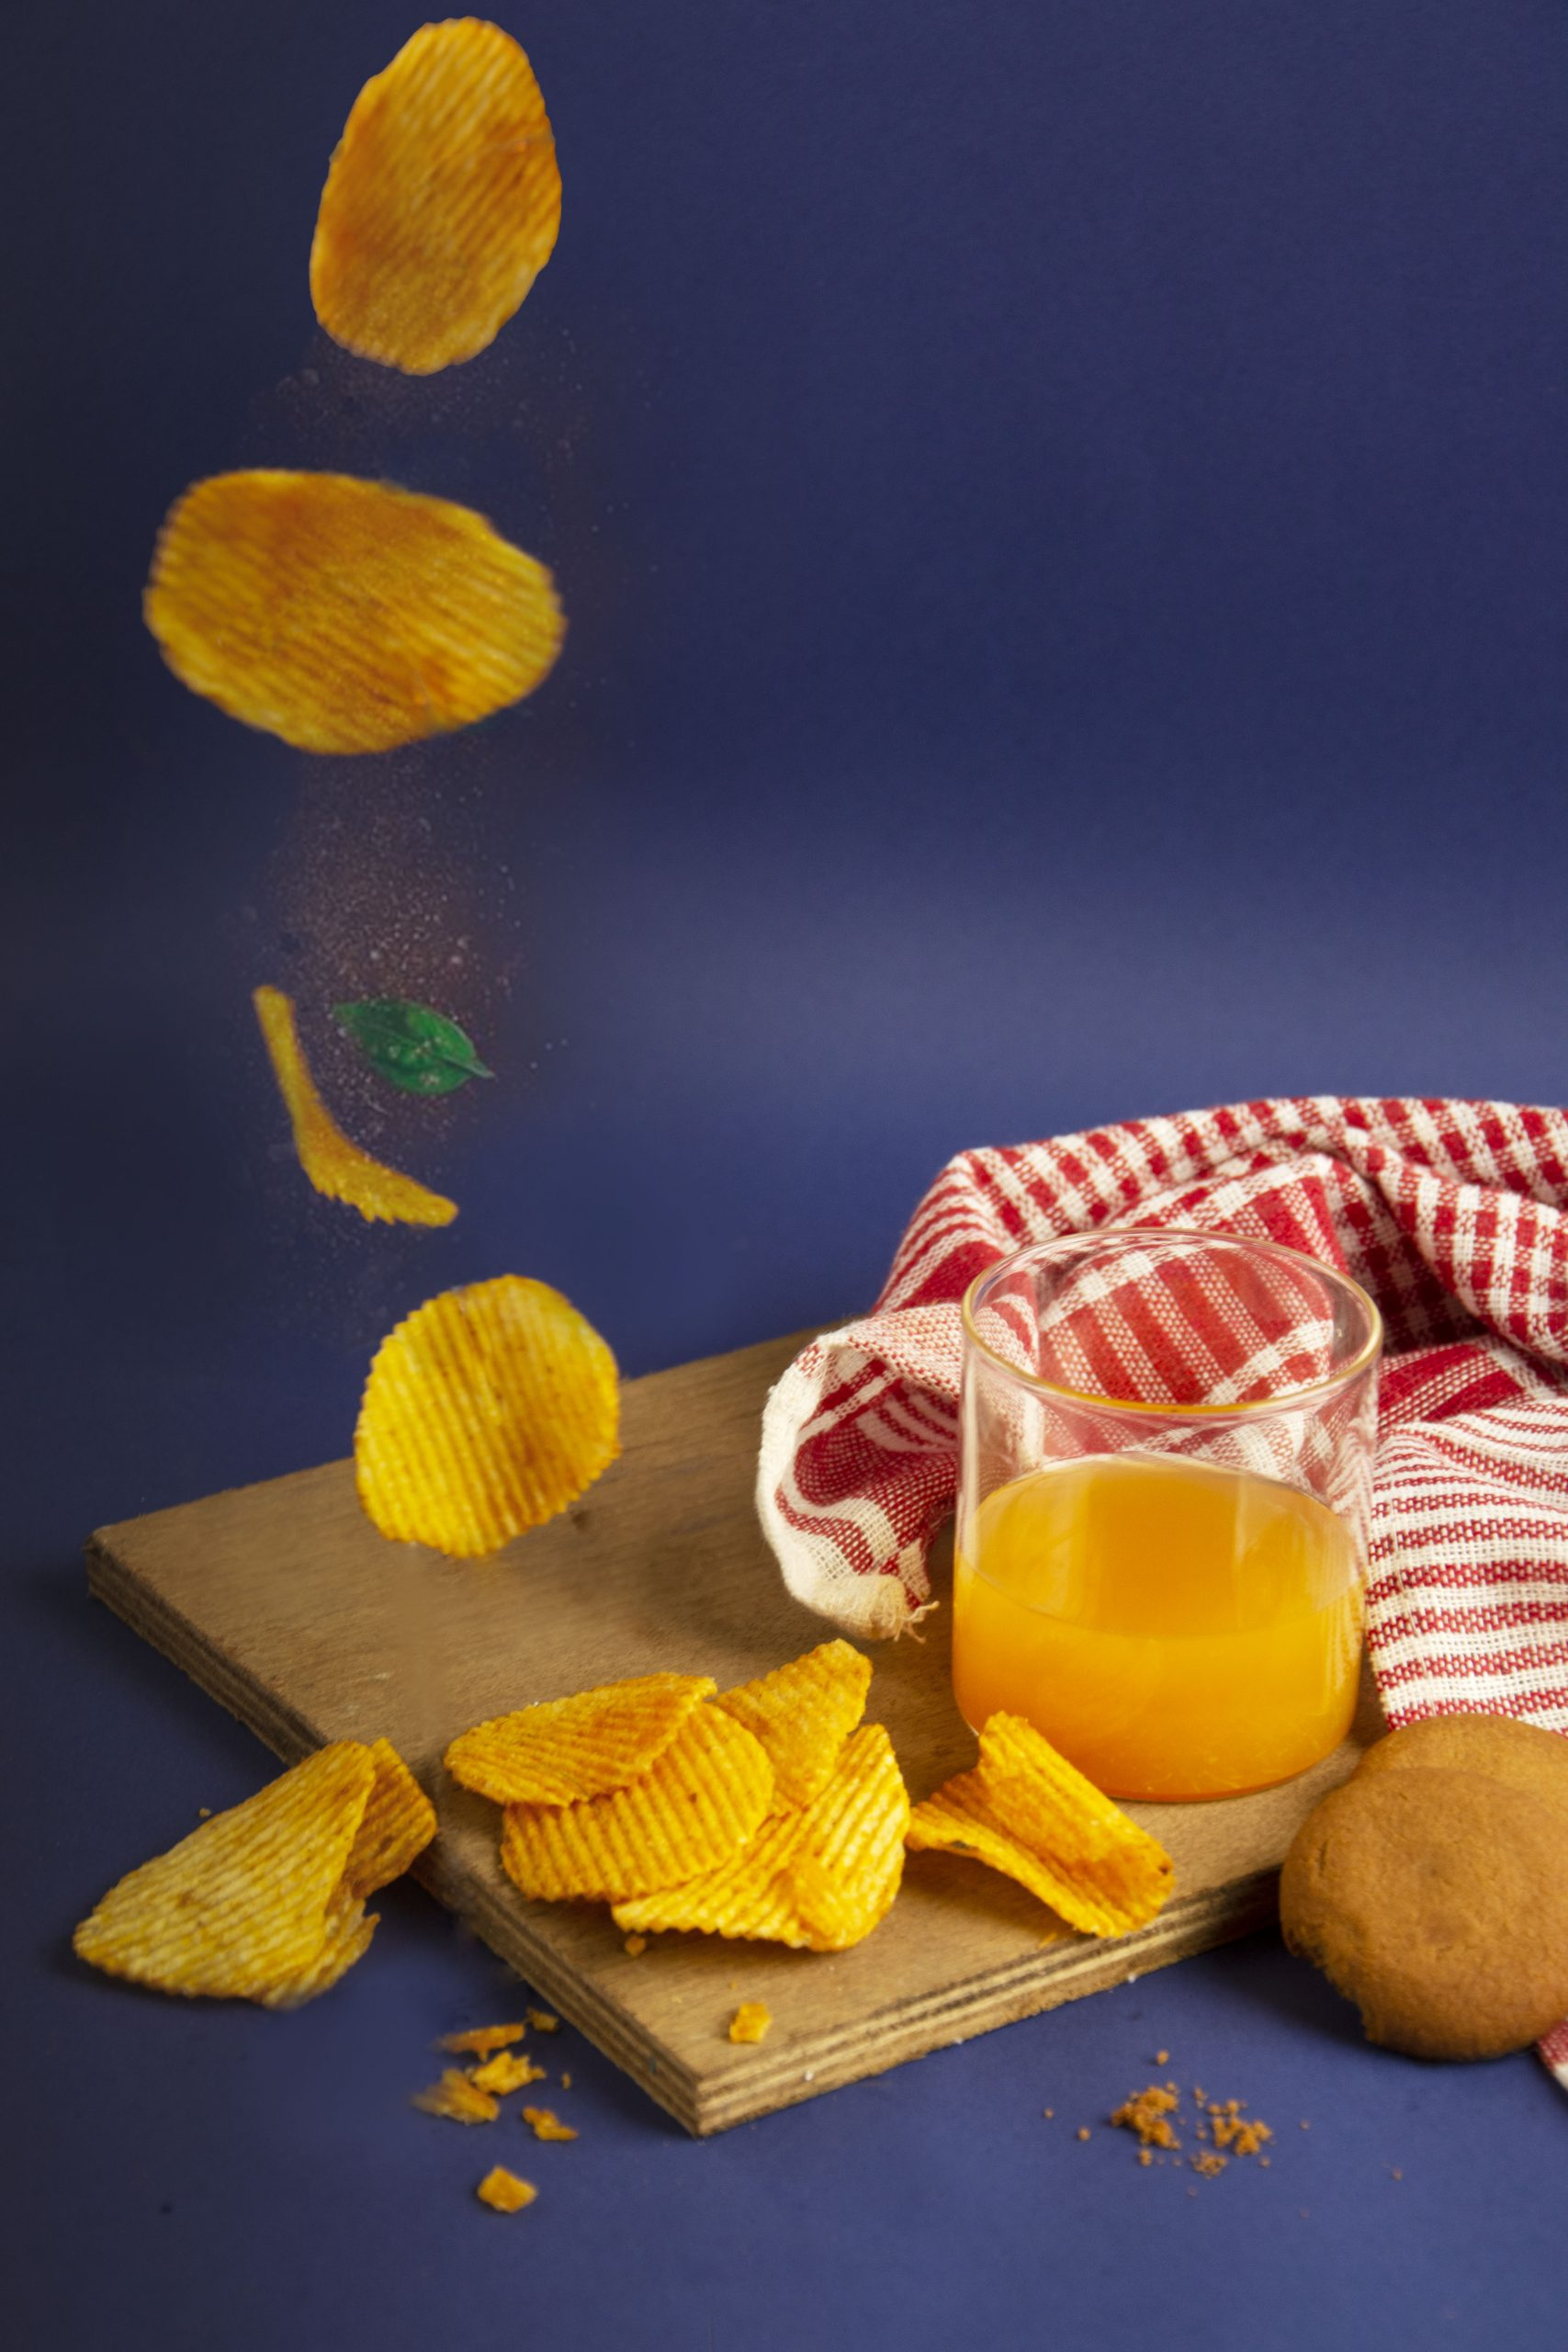 Chips and juice for refreshment